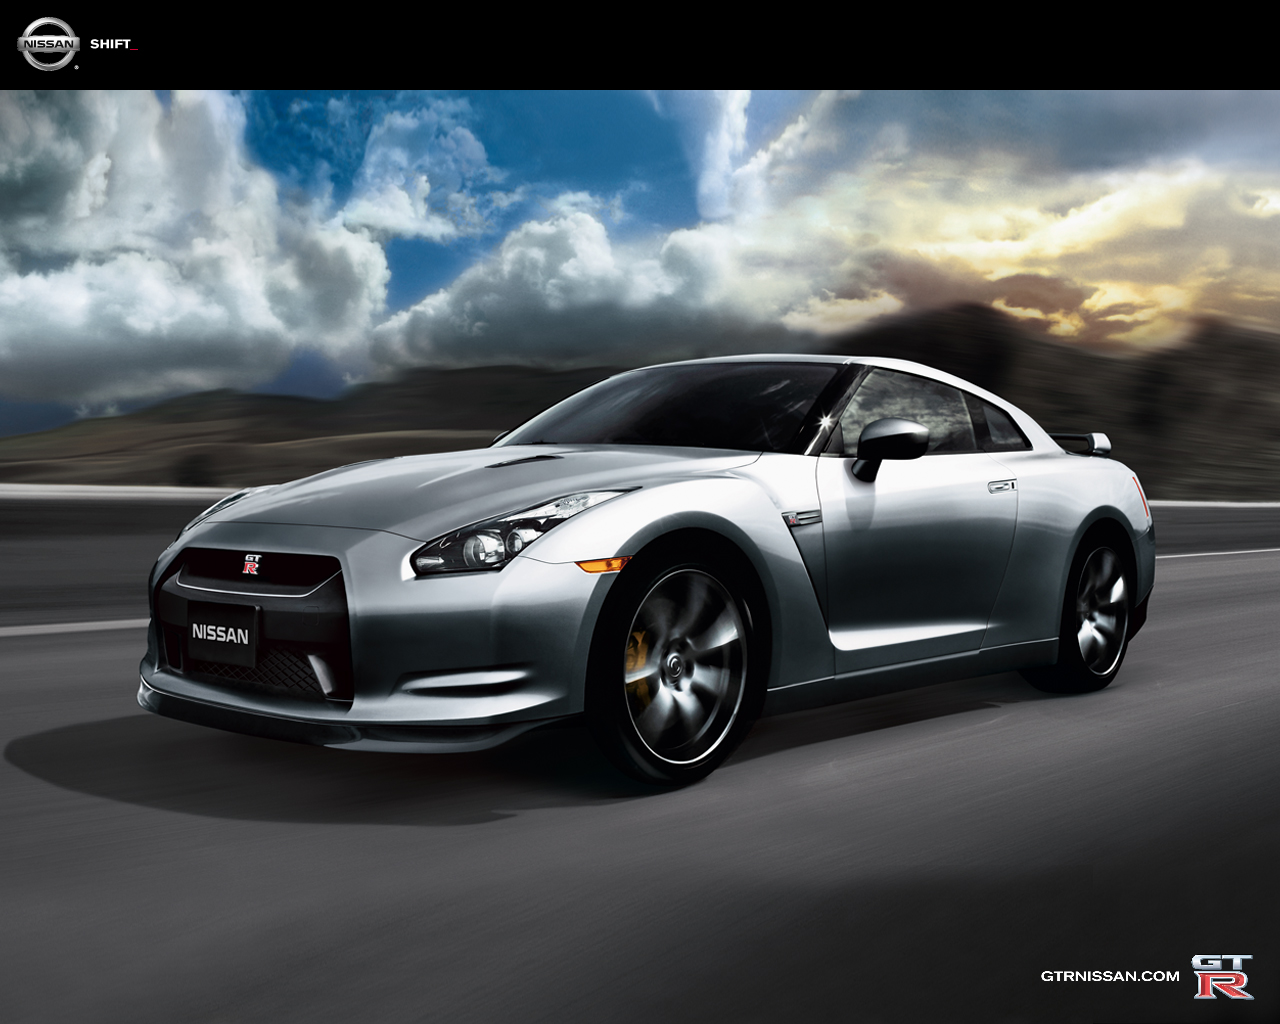 2012 nissan gtr. Black Bedroom Furniture Sets. Home Design Ideas